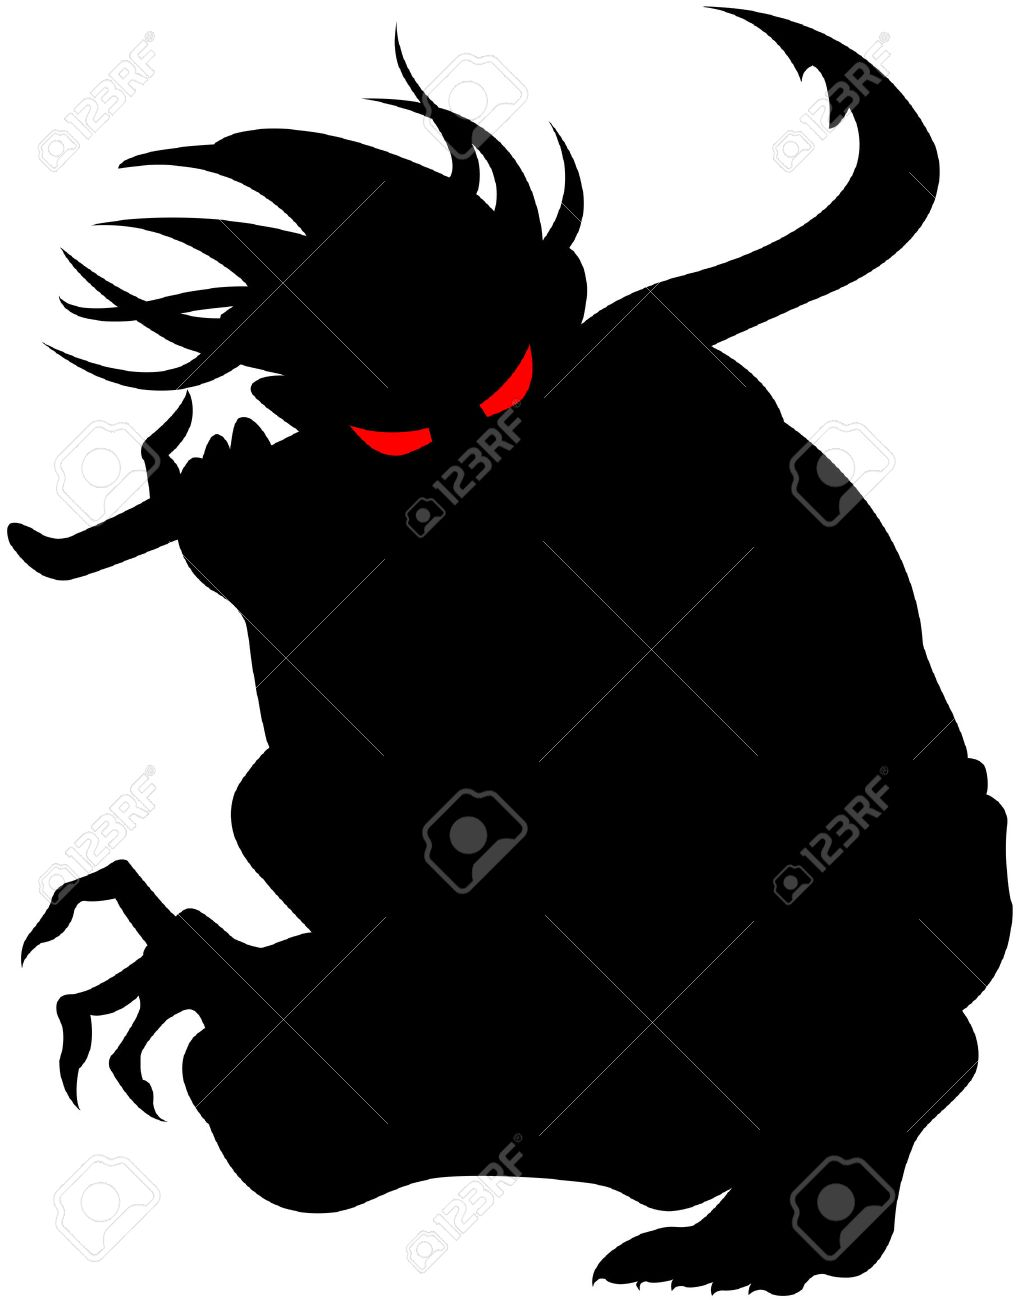 Vector image of devil silhouette, isolated.